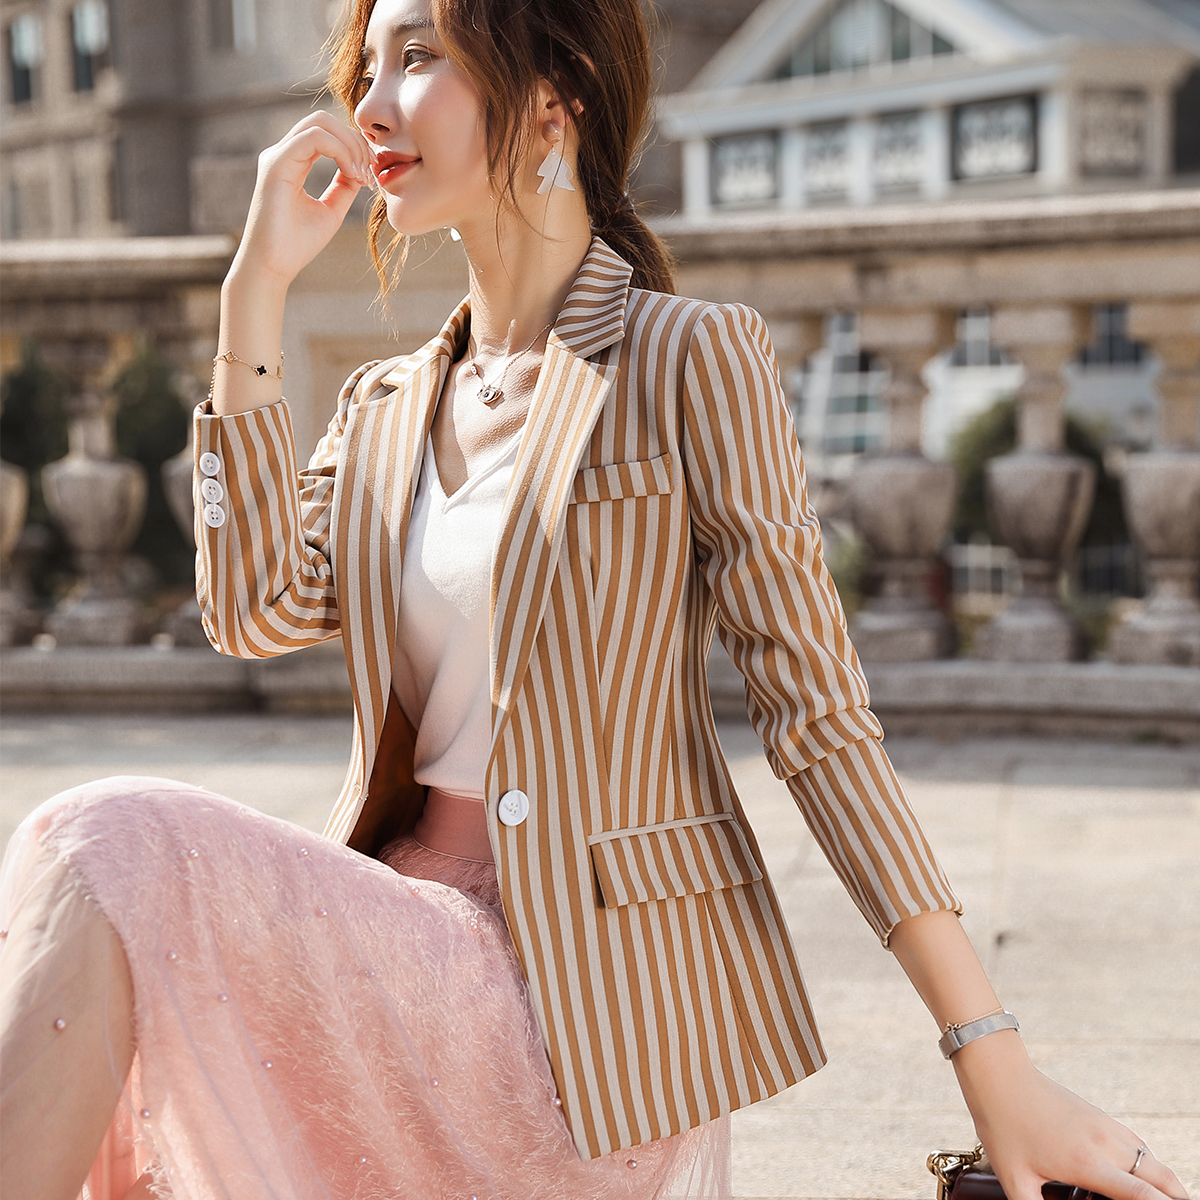 Female Elegant Formal New Plus Size 4XL Women Blazer Spring Summer Casual Long Sleeve Pink Black Yellow Stripe Jackets Blazer OL